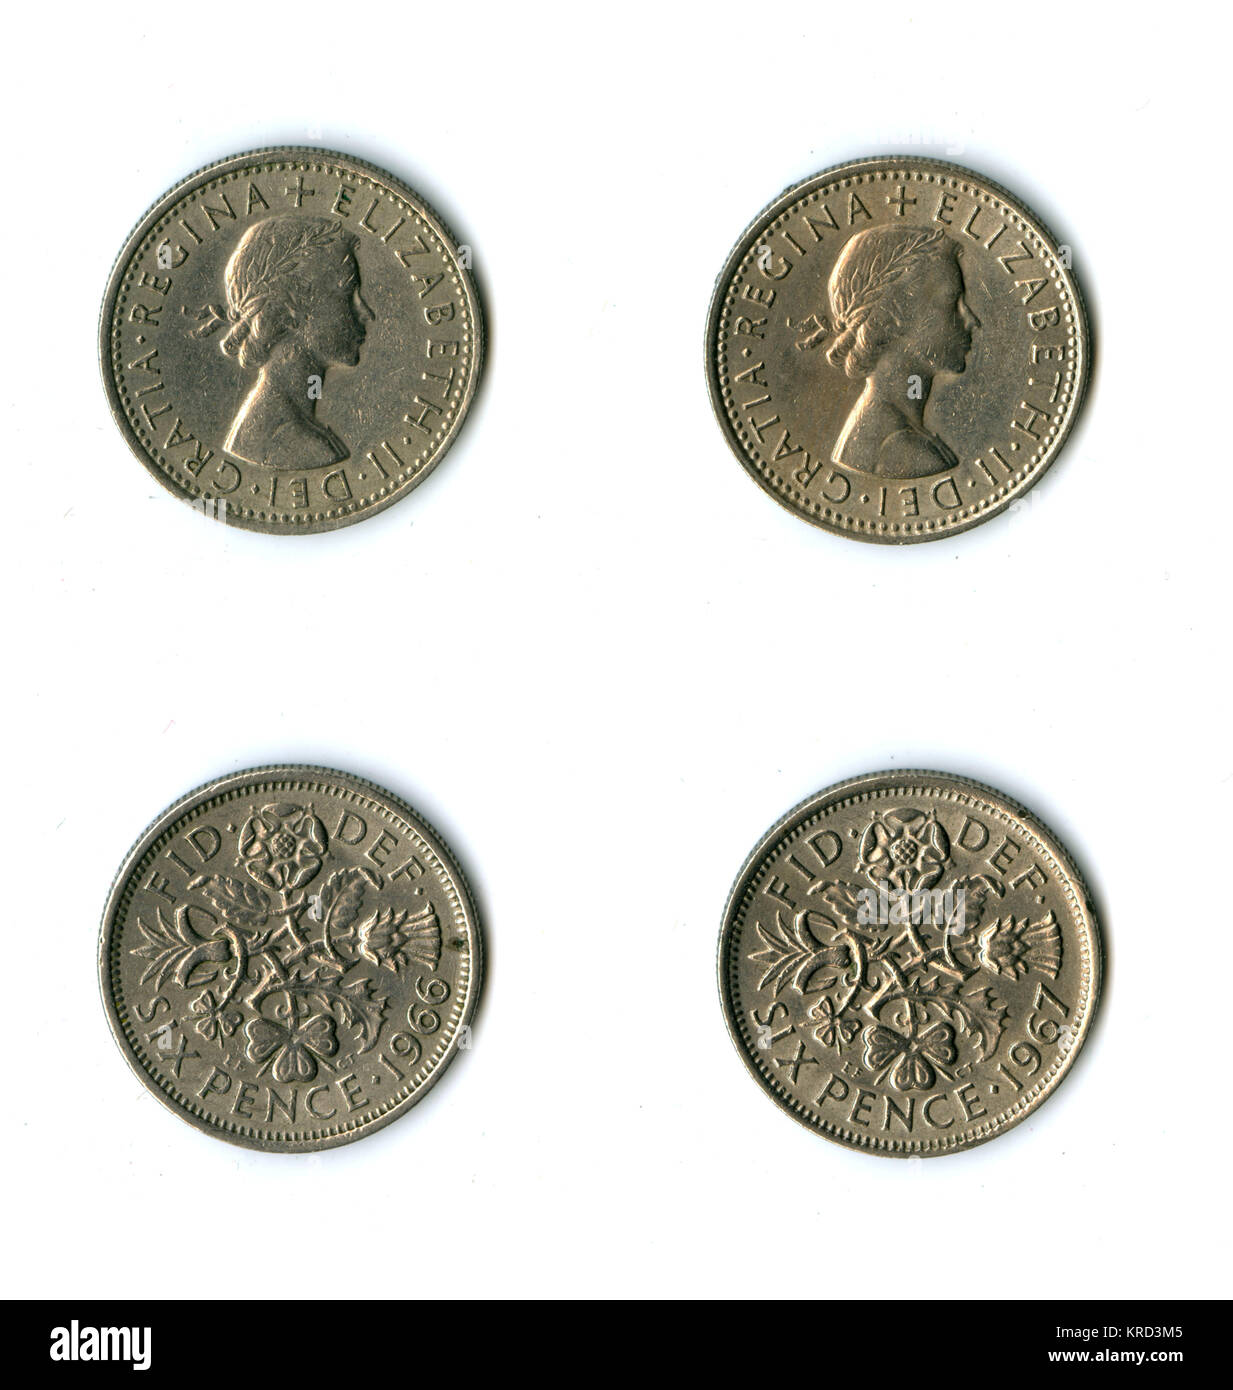 British coins, two Elizabeth II sixpences for 1966 and 1967, with a design on the reverse representing England (rose), - Stock Image